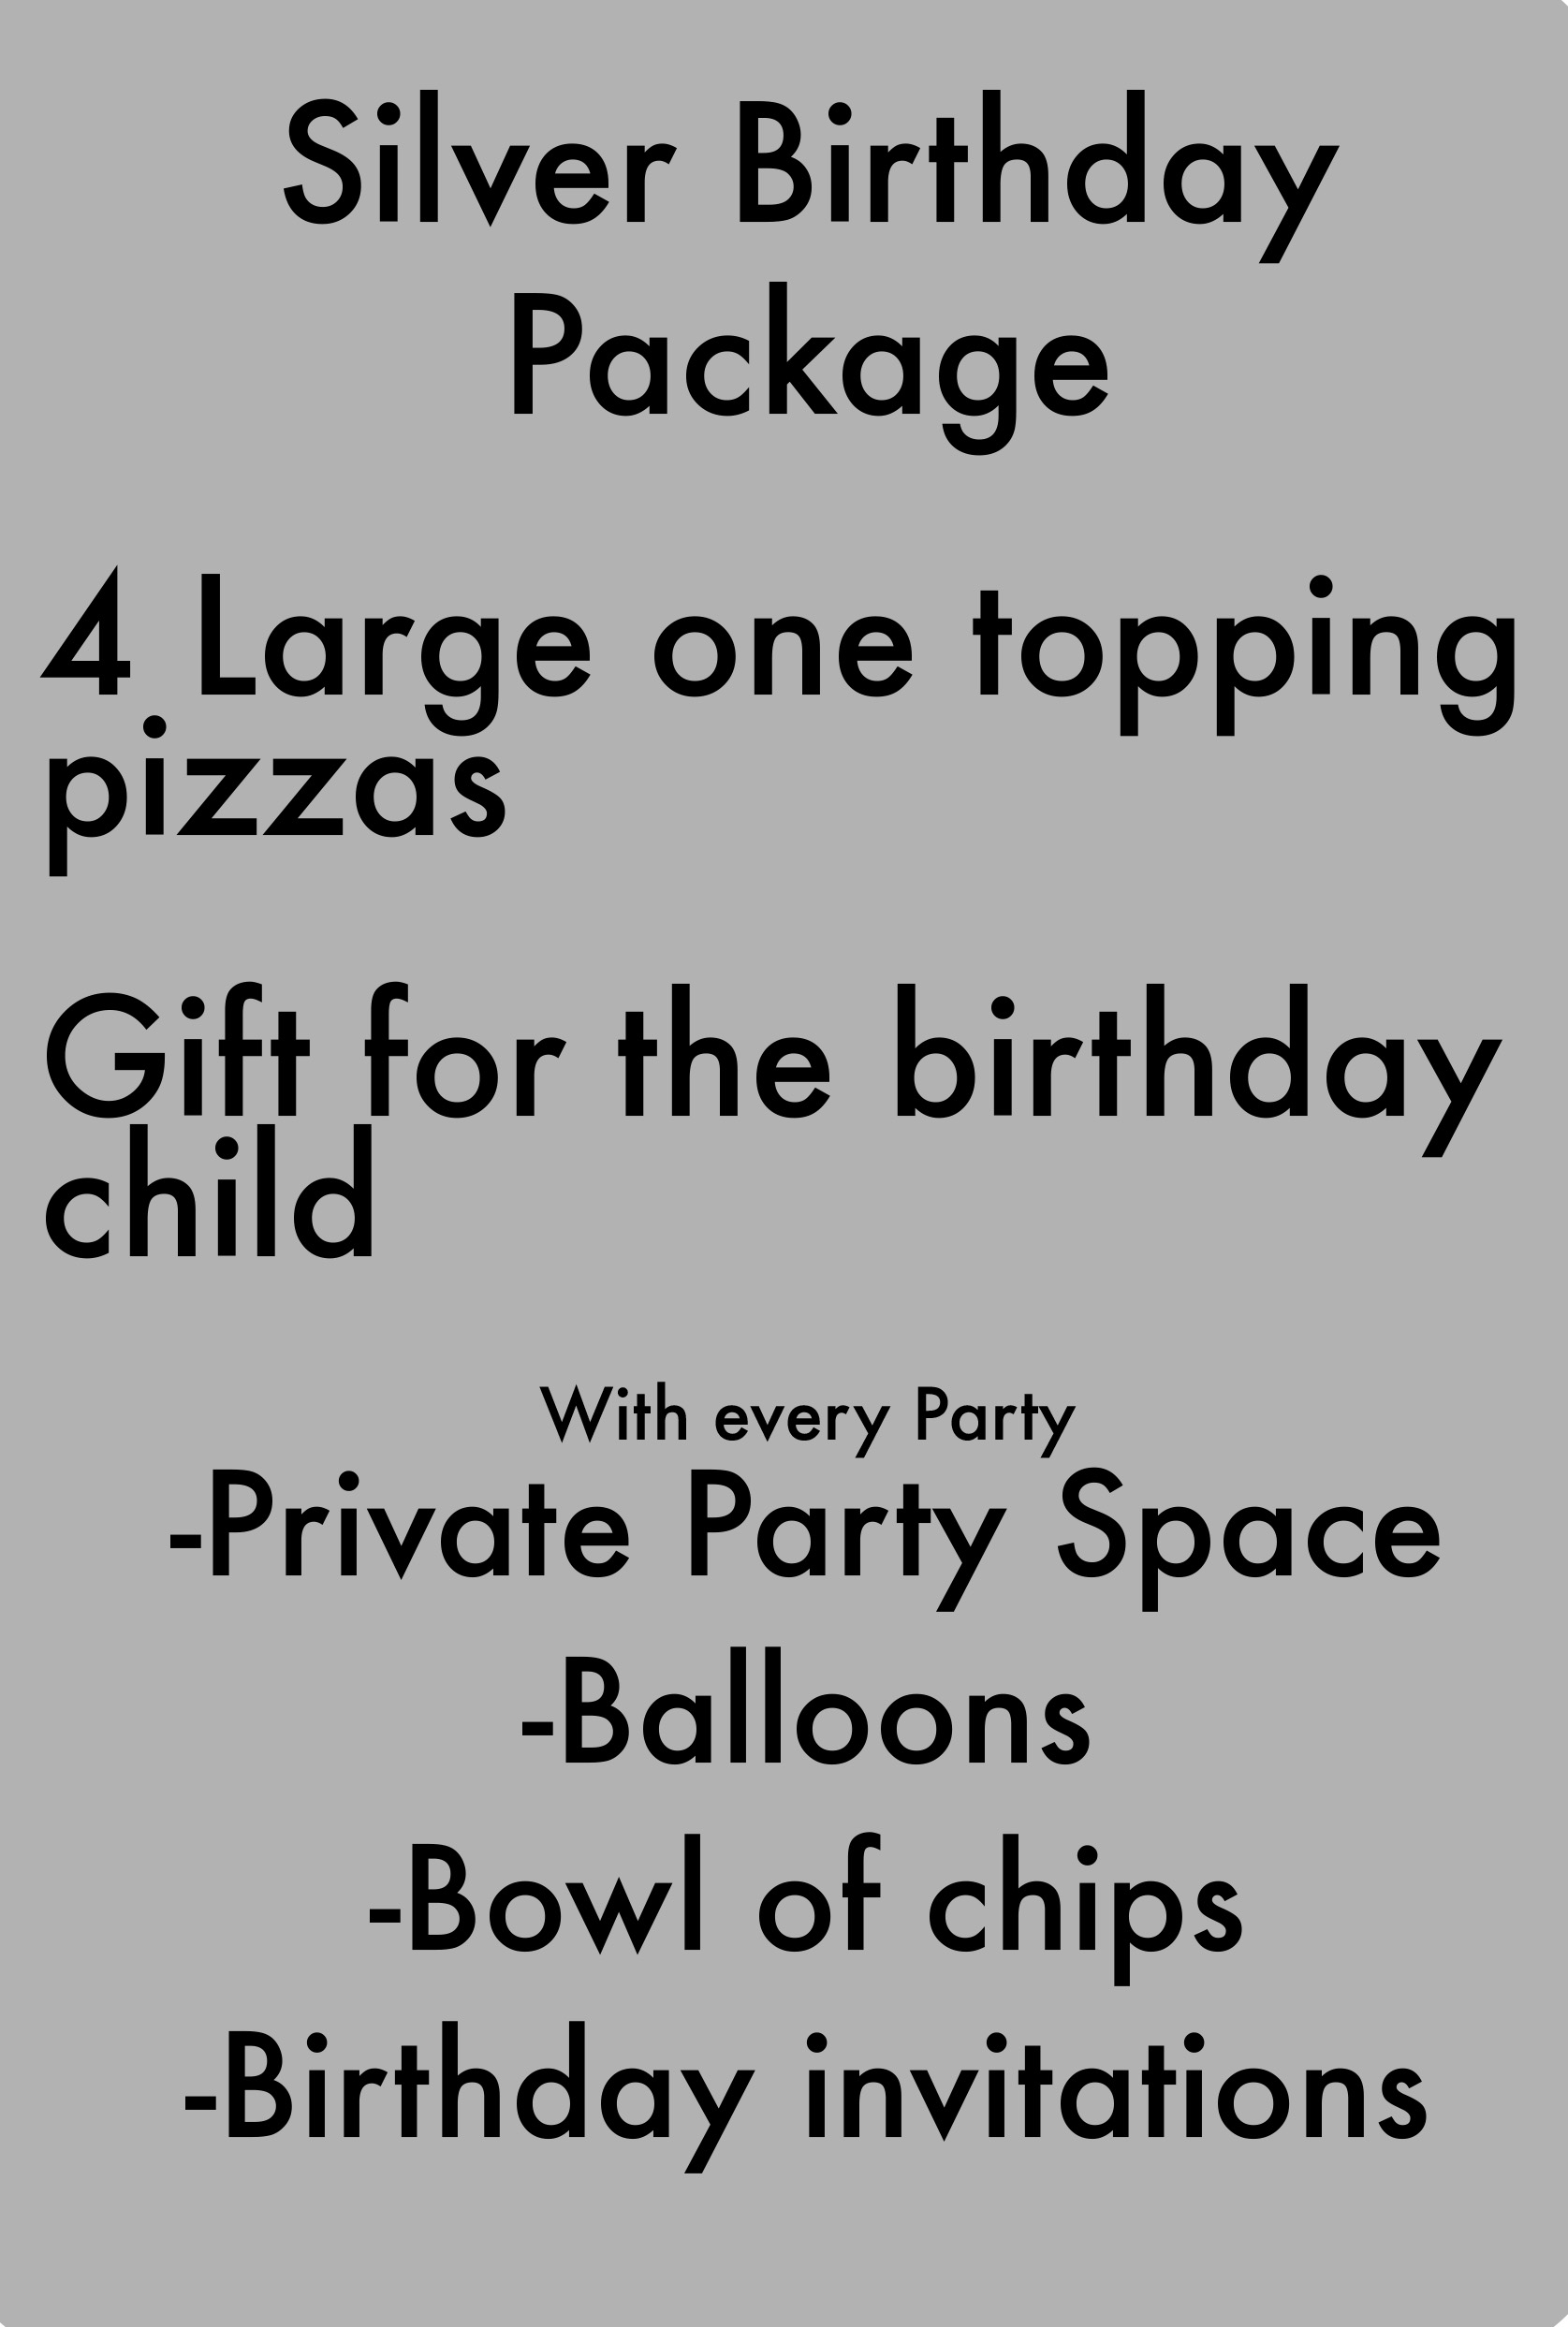 The silver birthday package is our most popular. It brings more food to the table as well as a special gift for the birthday child. -